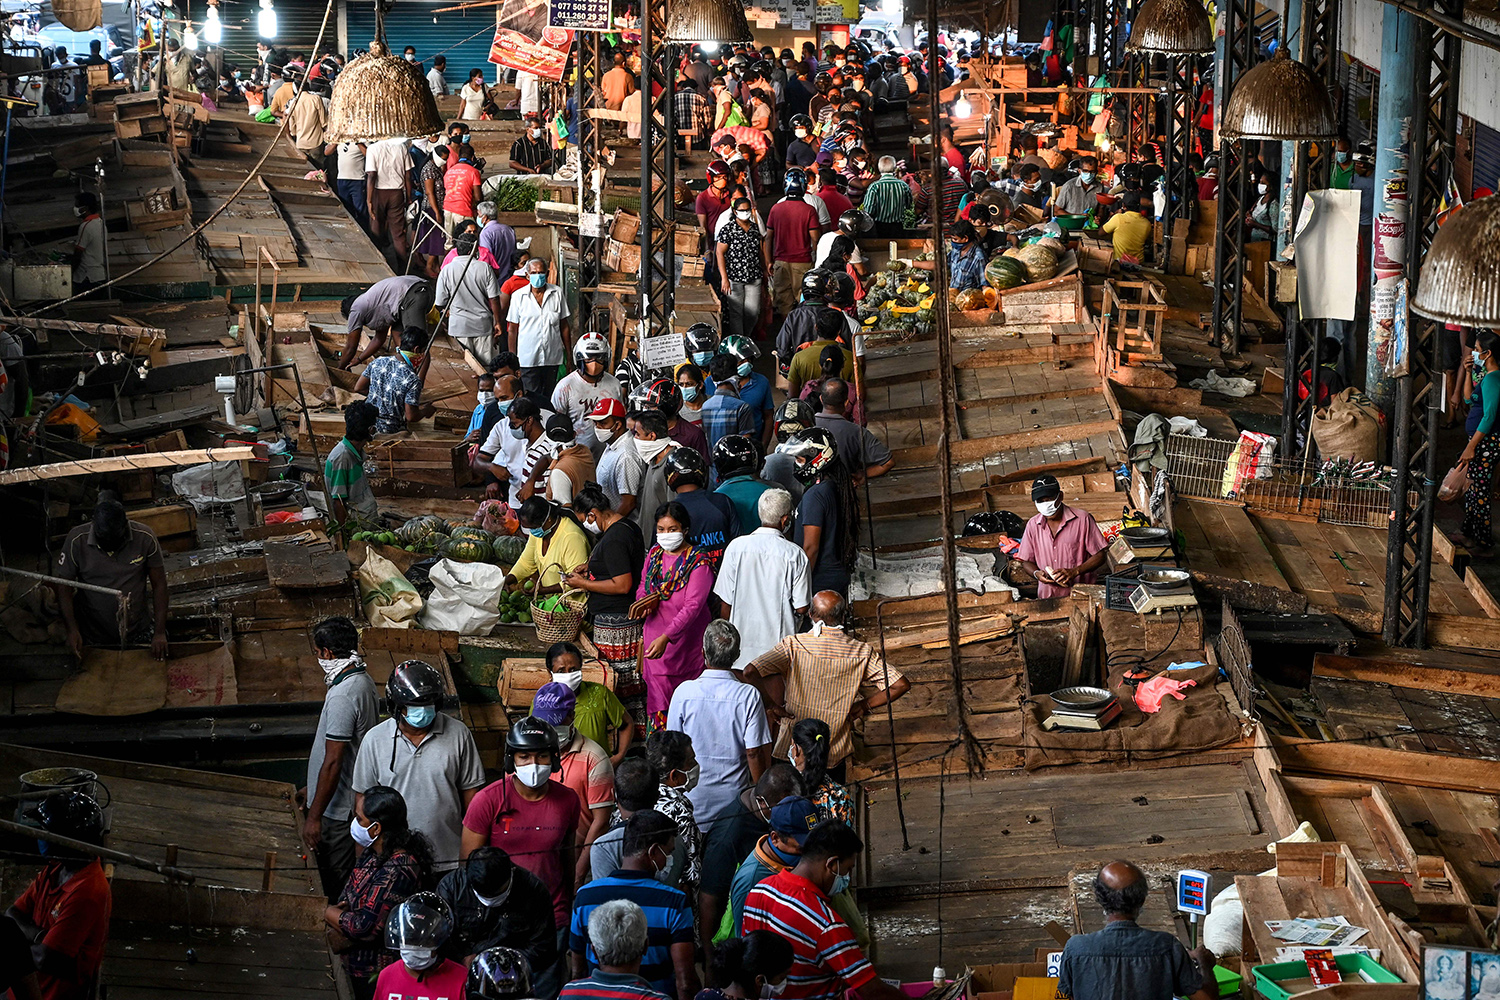 People buy supplies at a vegetable market in Piliyandala, a suburb of Colombo, Sri Lanka, on March 24 as authorities briefly lift a curfew to allow residents to stock up on essentials. LAKRUWAN WANNIARACHCHI/AFP via Getty Images